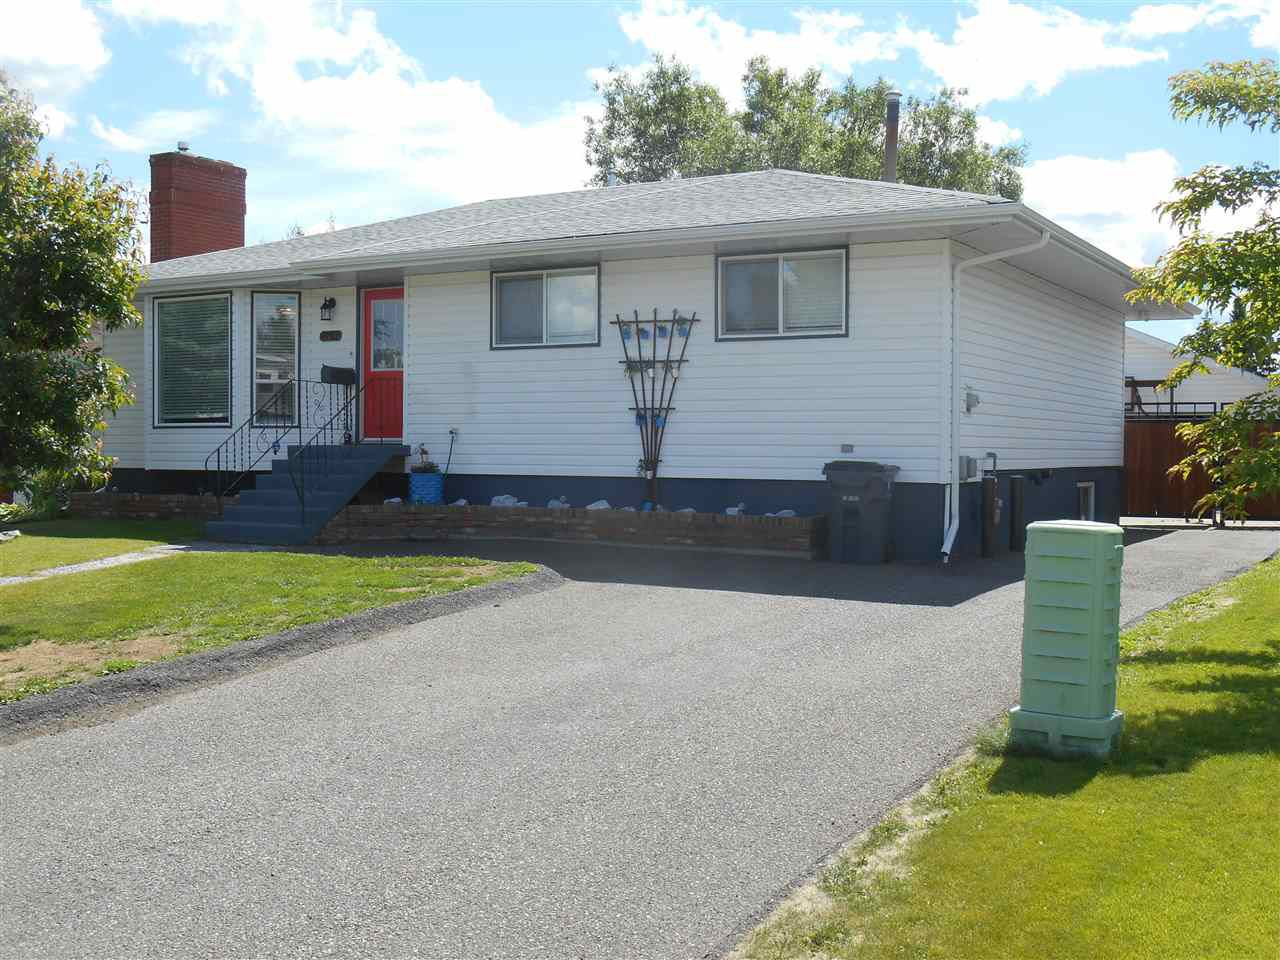 Main Photo: 1143 CHILAKO Avenue in Prince George: Spruceland House for sale (PG City West (Zone 71))  : MLS®# R2180994